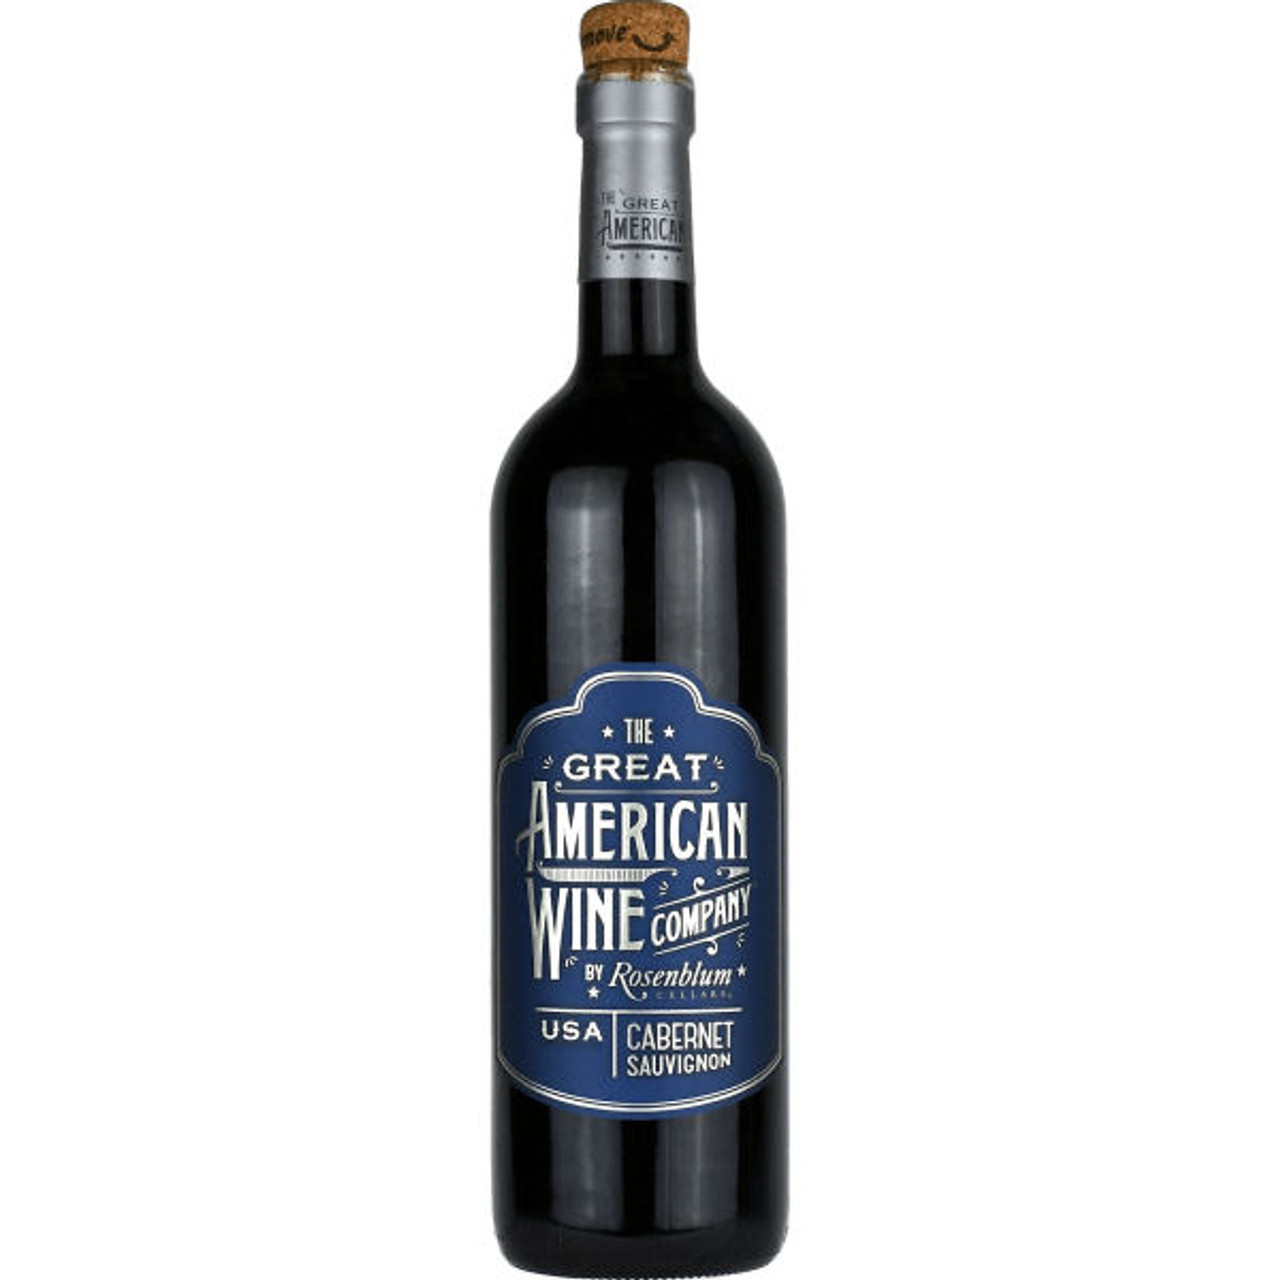 The Great American Wine Company by Rosenblum Cabernet